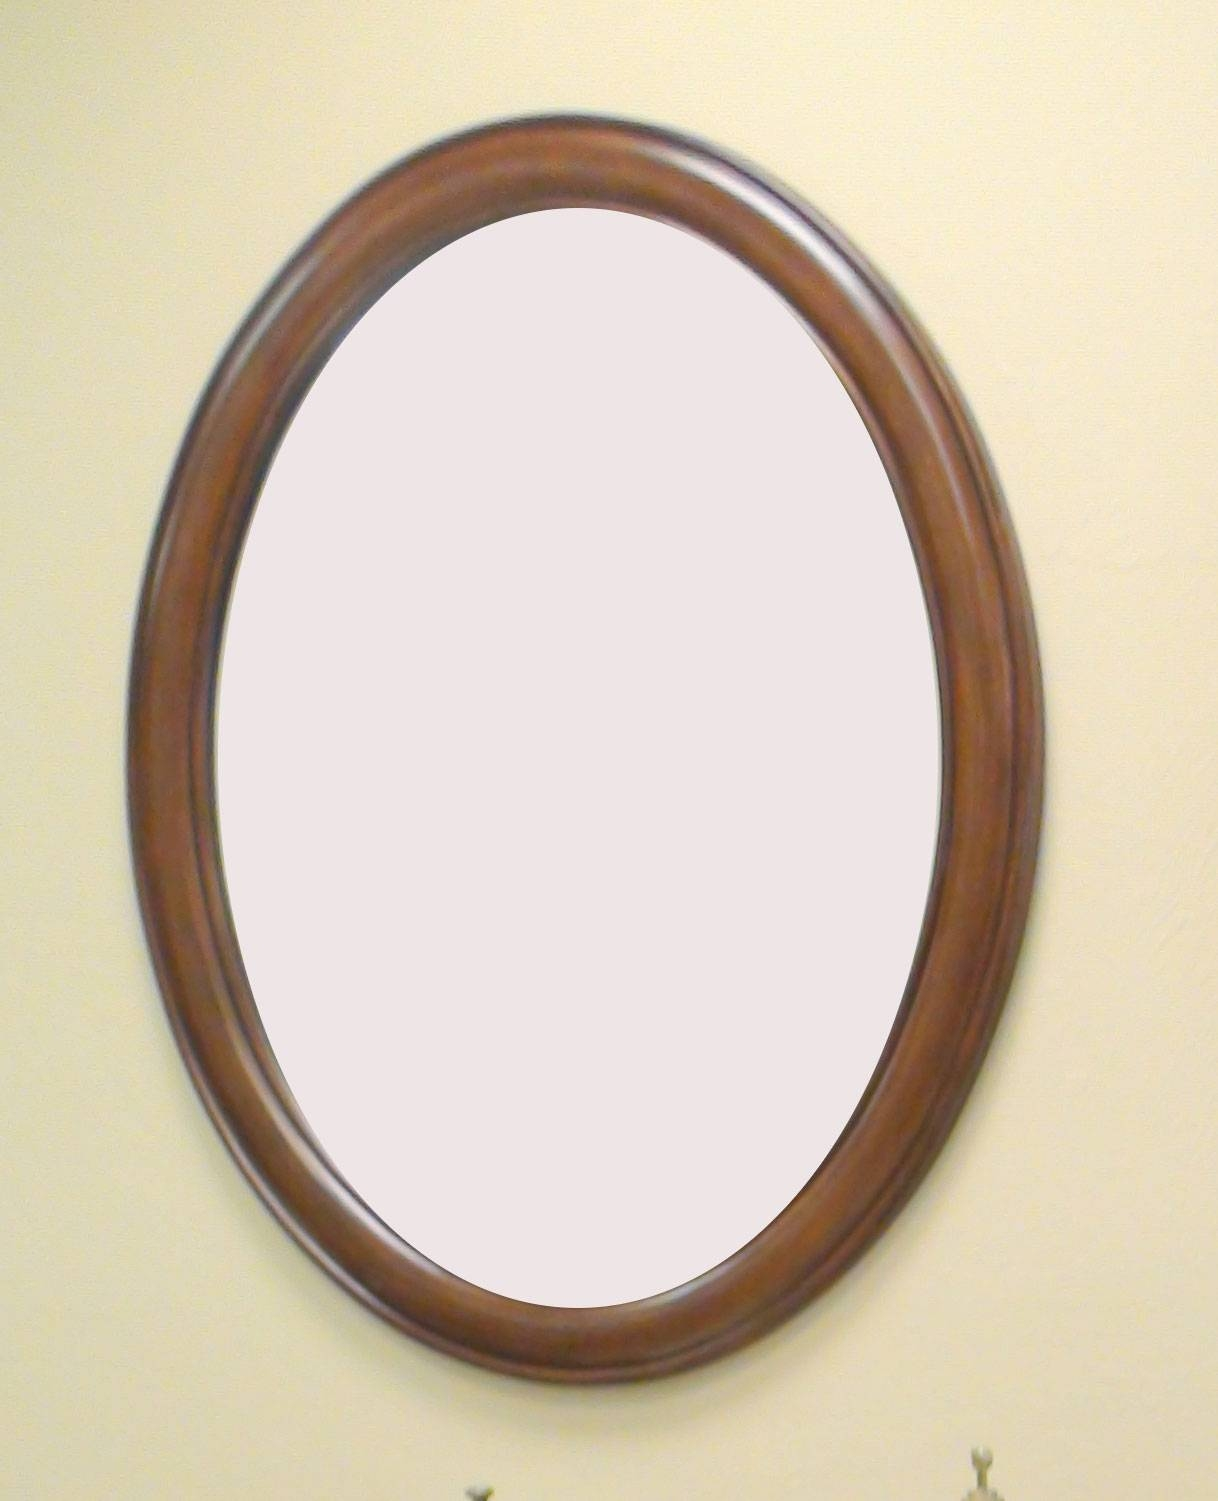 Bathroom Ideas: Wooden Oval Home Depot Bathroom Mirrors On Cream inside Oval Cream Mirrors (Image 4 of 15)